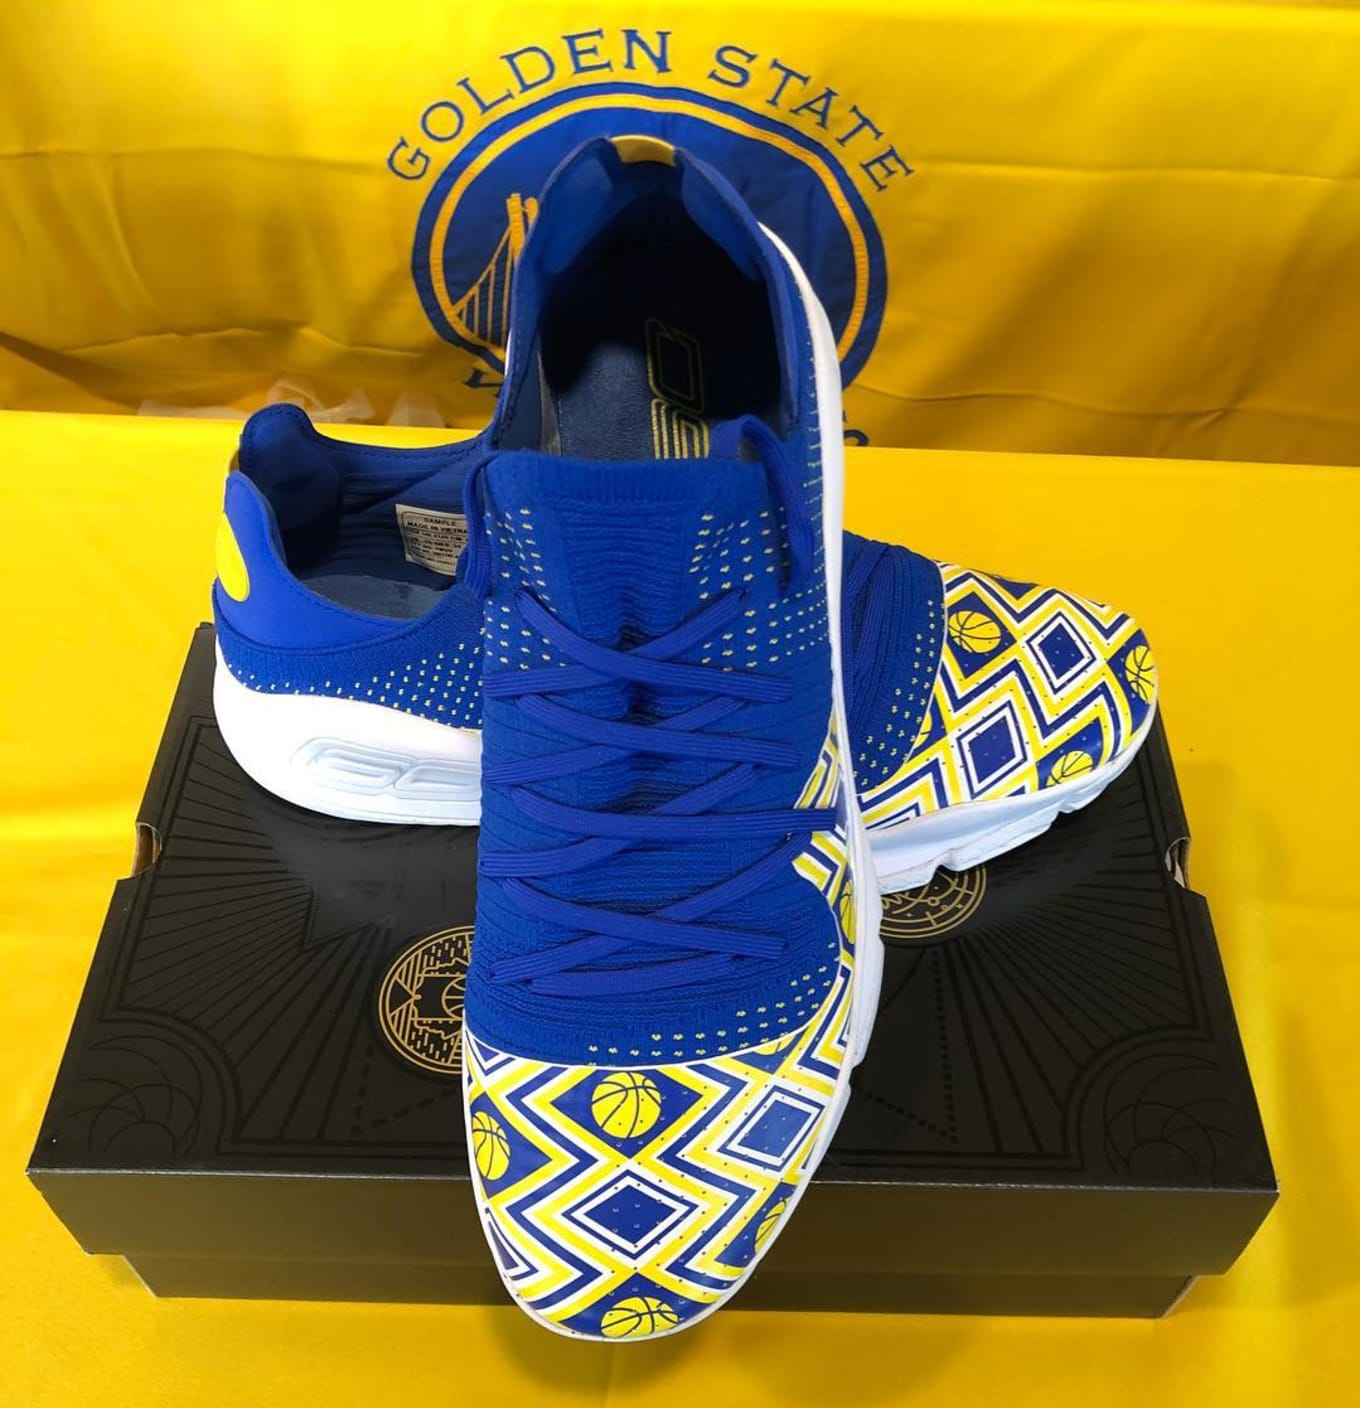 ff7dd03b45df Under Armour Curry 4 Low Season Ticket Holder Exclusive